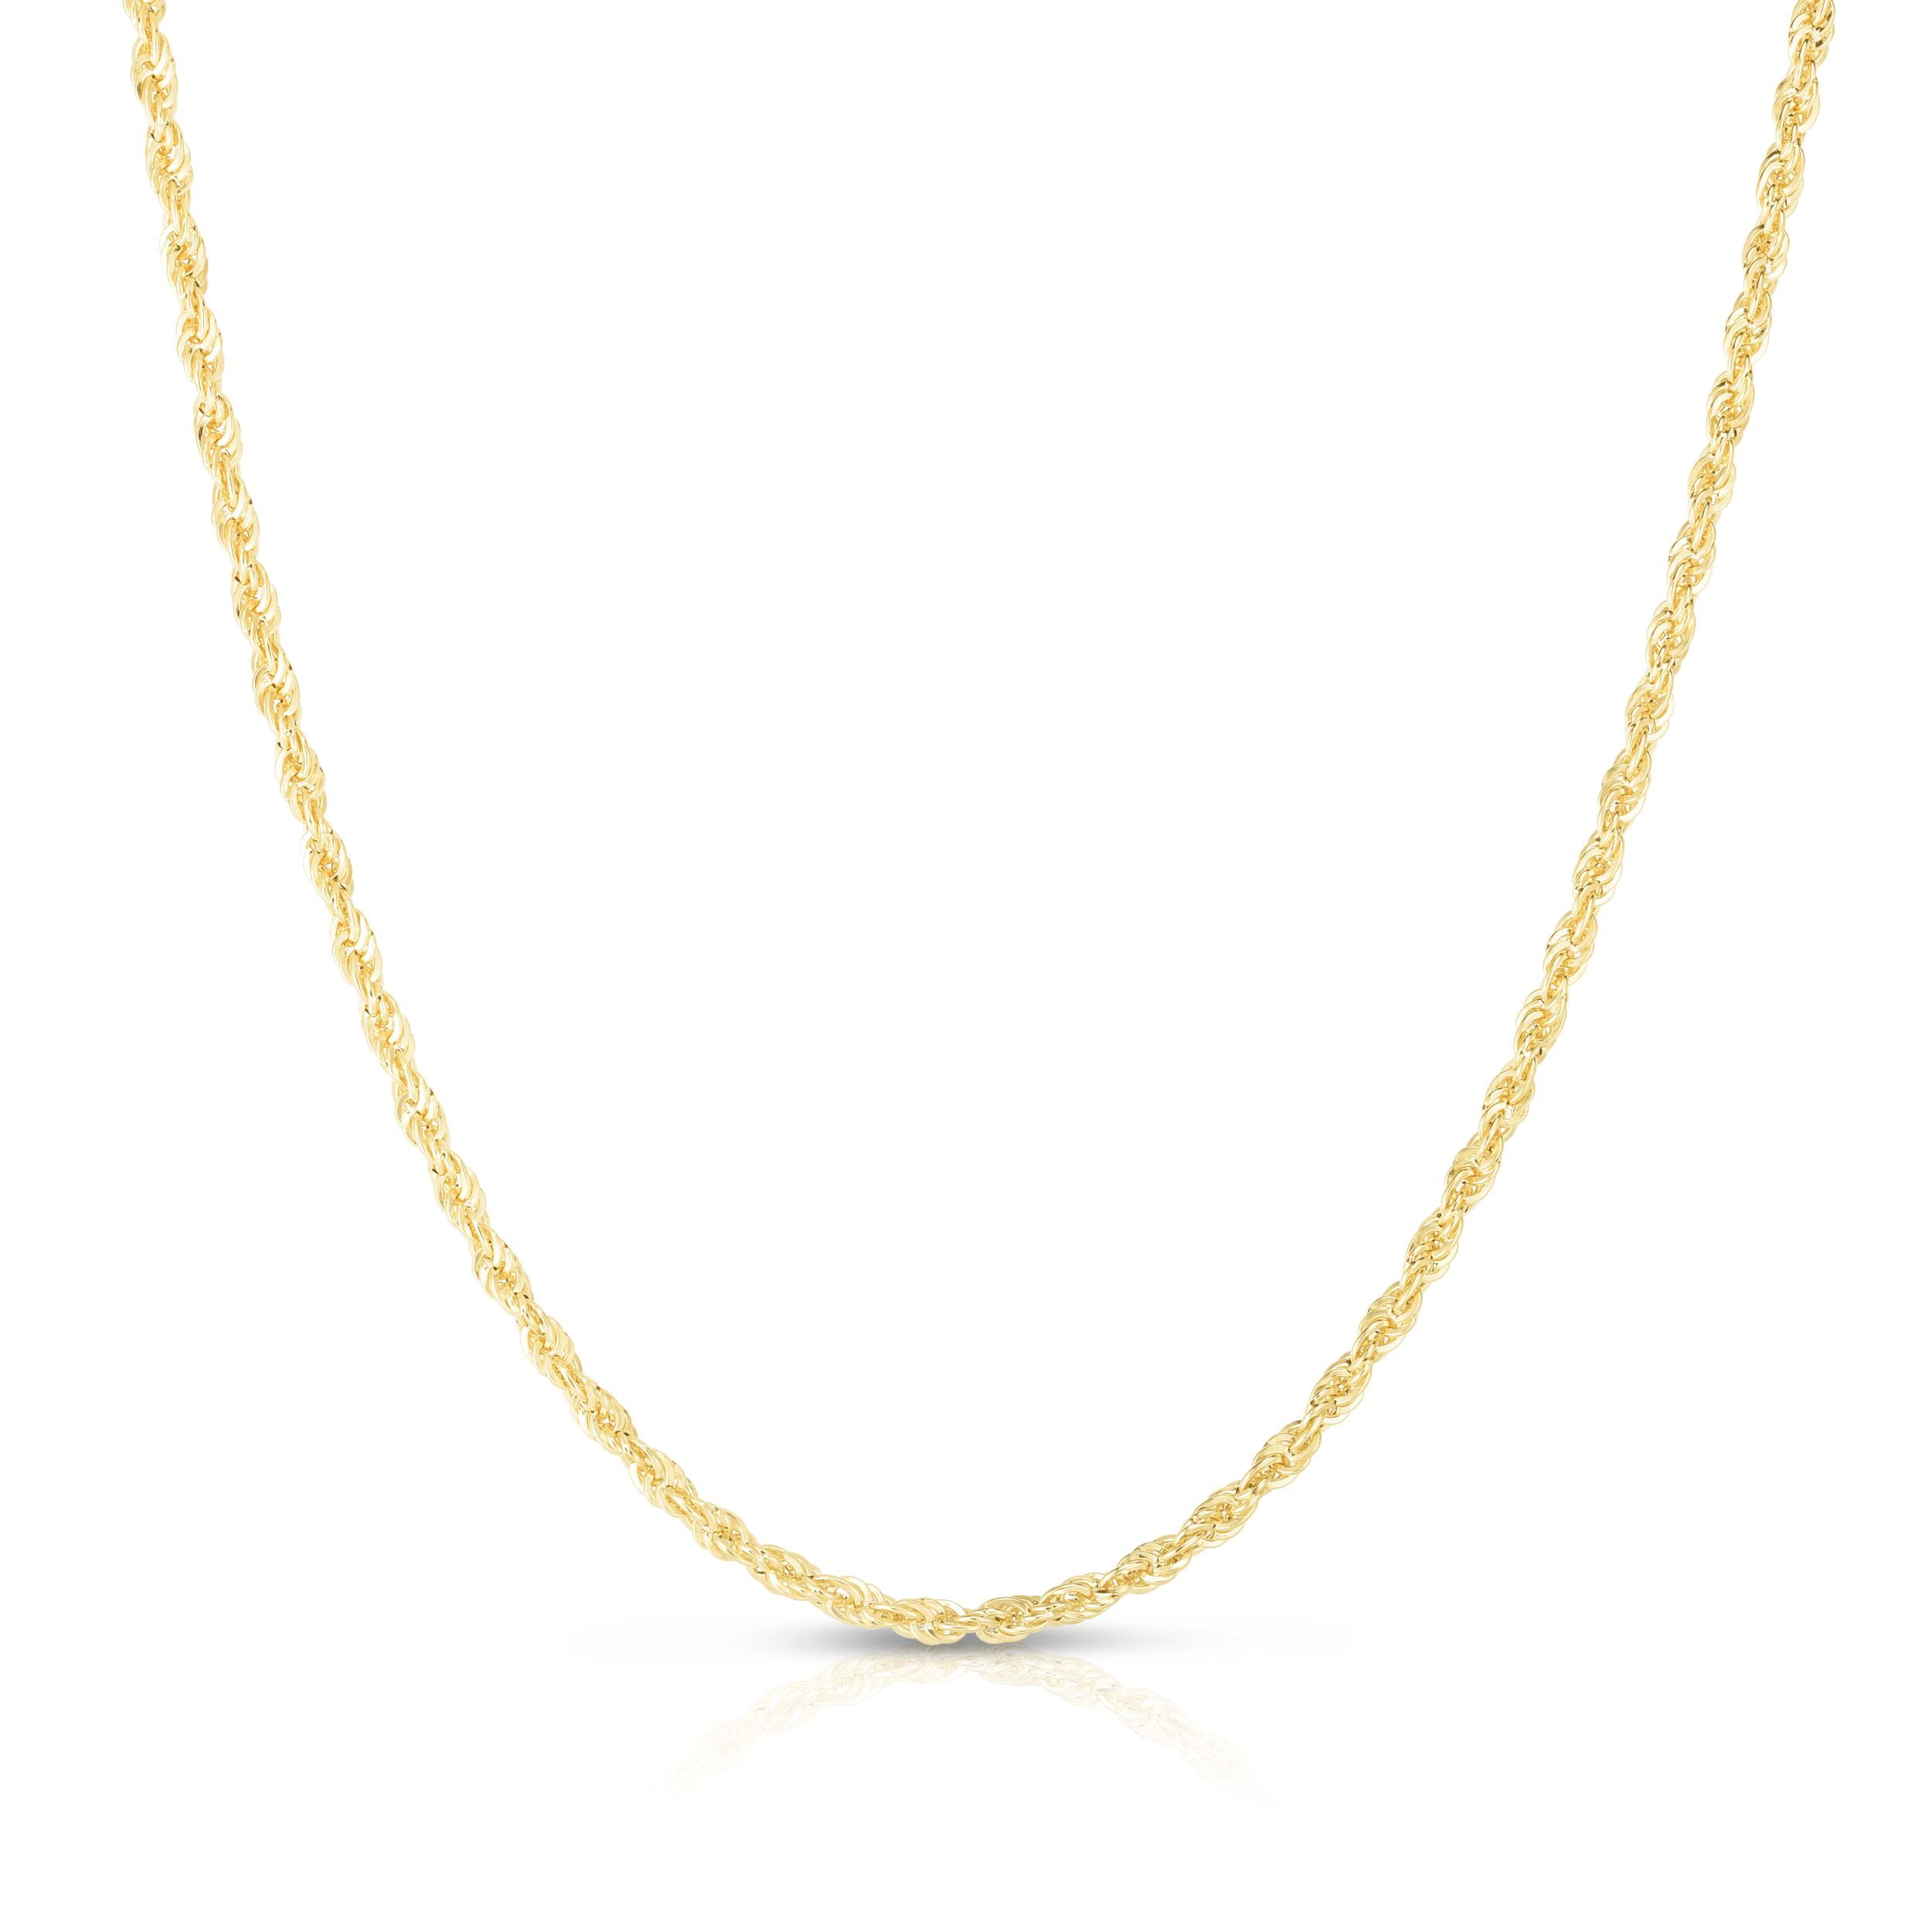 14K Gold 2.5mm Lite Rope Chain